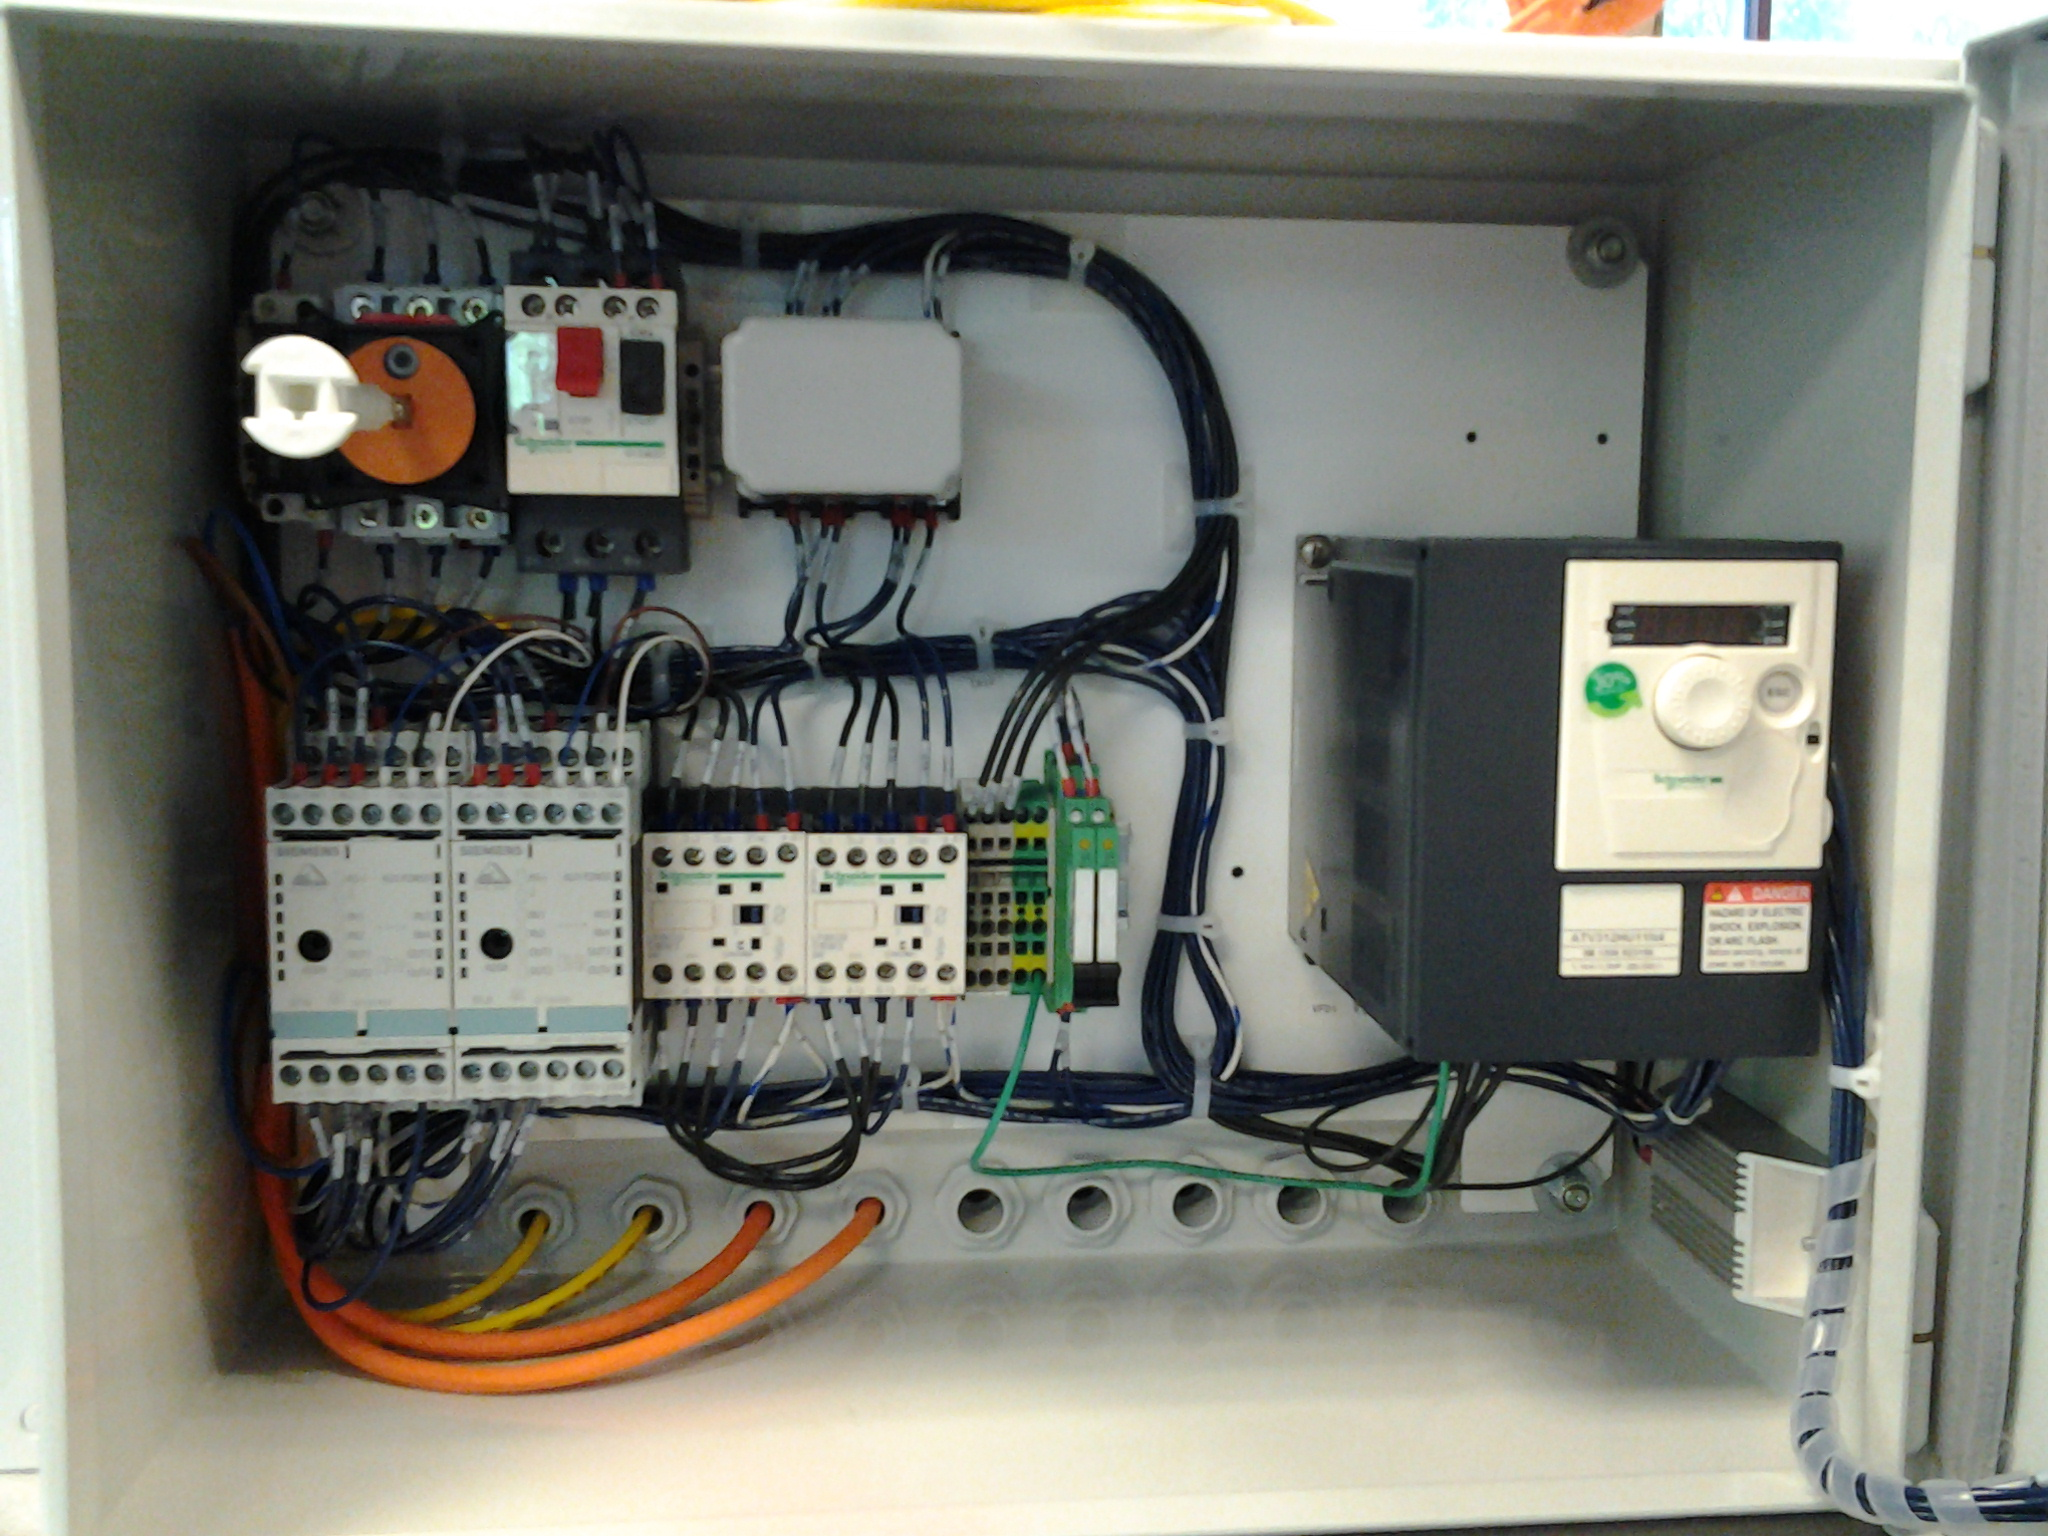 control box wiring electrical control panel wiring | electrical panel ... ejector pump control box wiring diagram #8